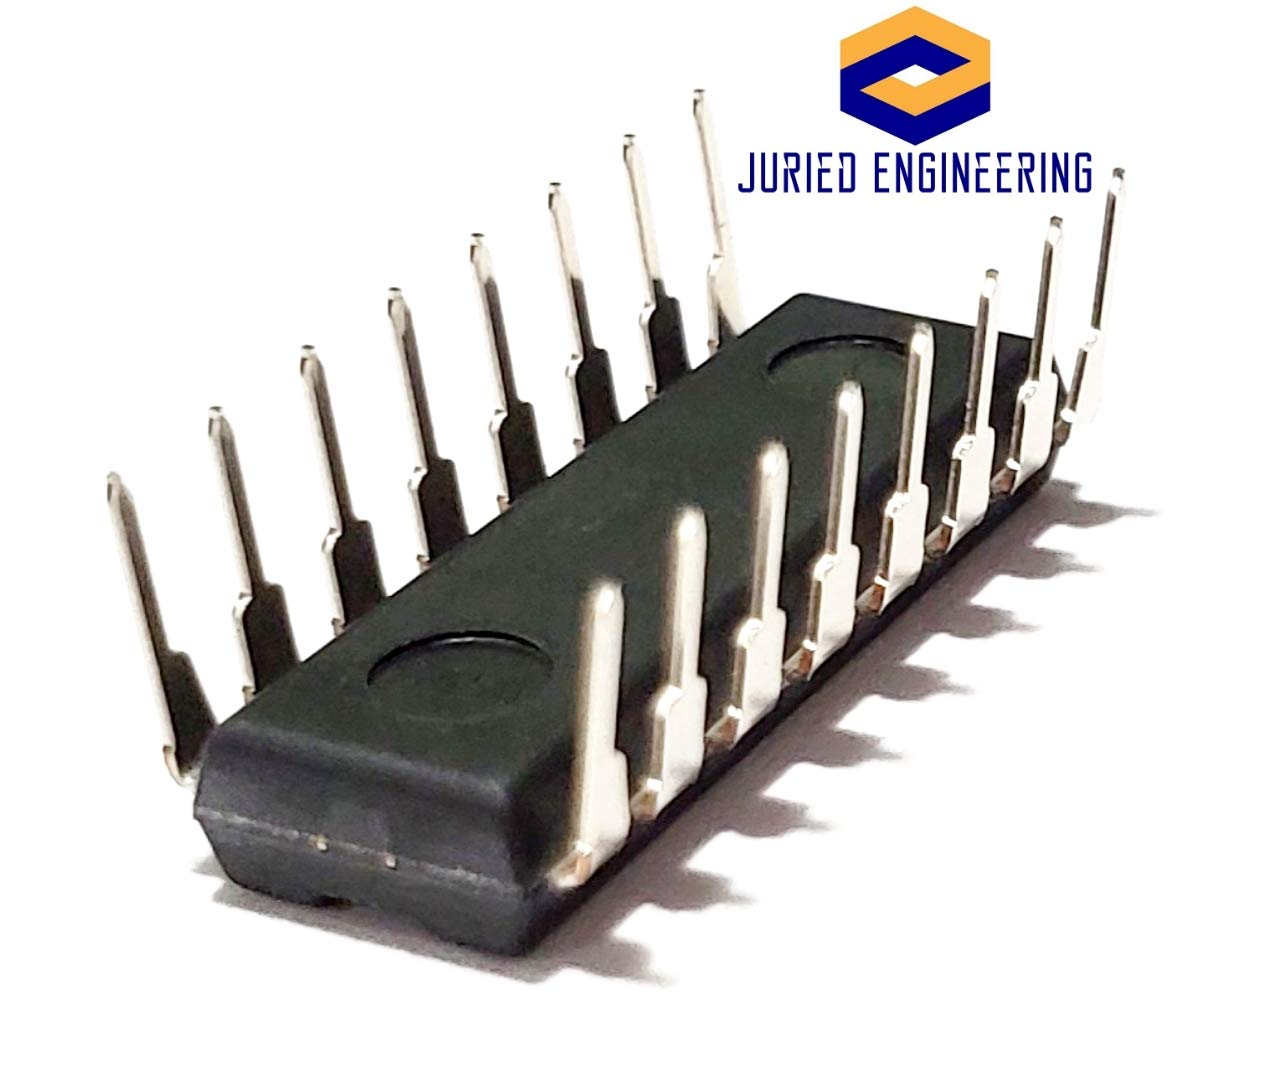 Pack of 2 Juried Engineering PCF8574N PCF8574 Remote 8-Bit I//O Expander for I2C-Bus Breadboard-Friendly IC DIP-16